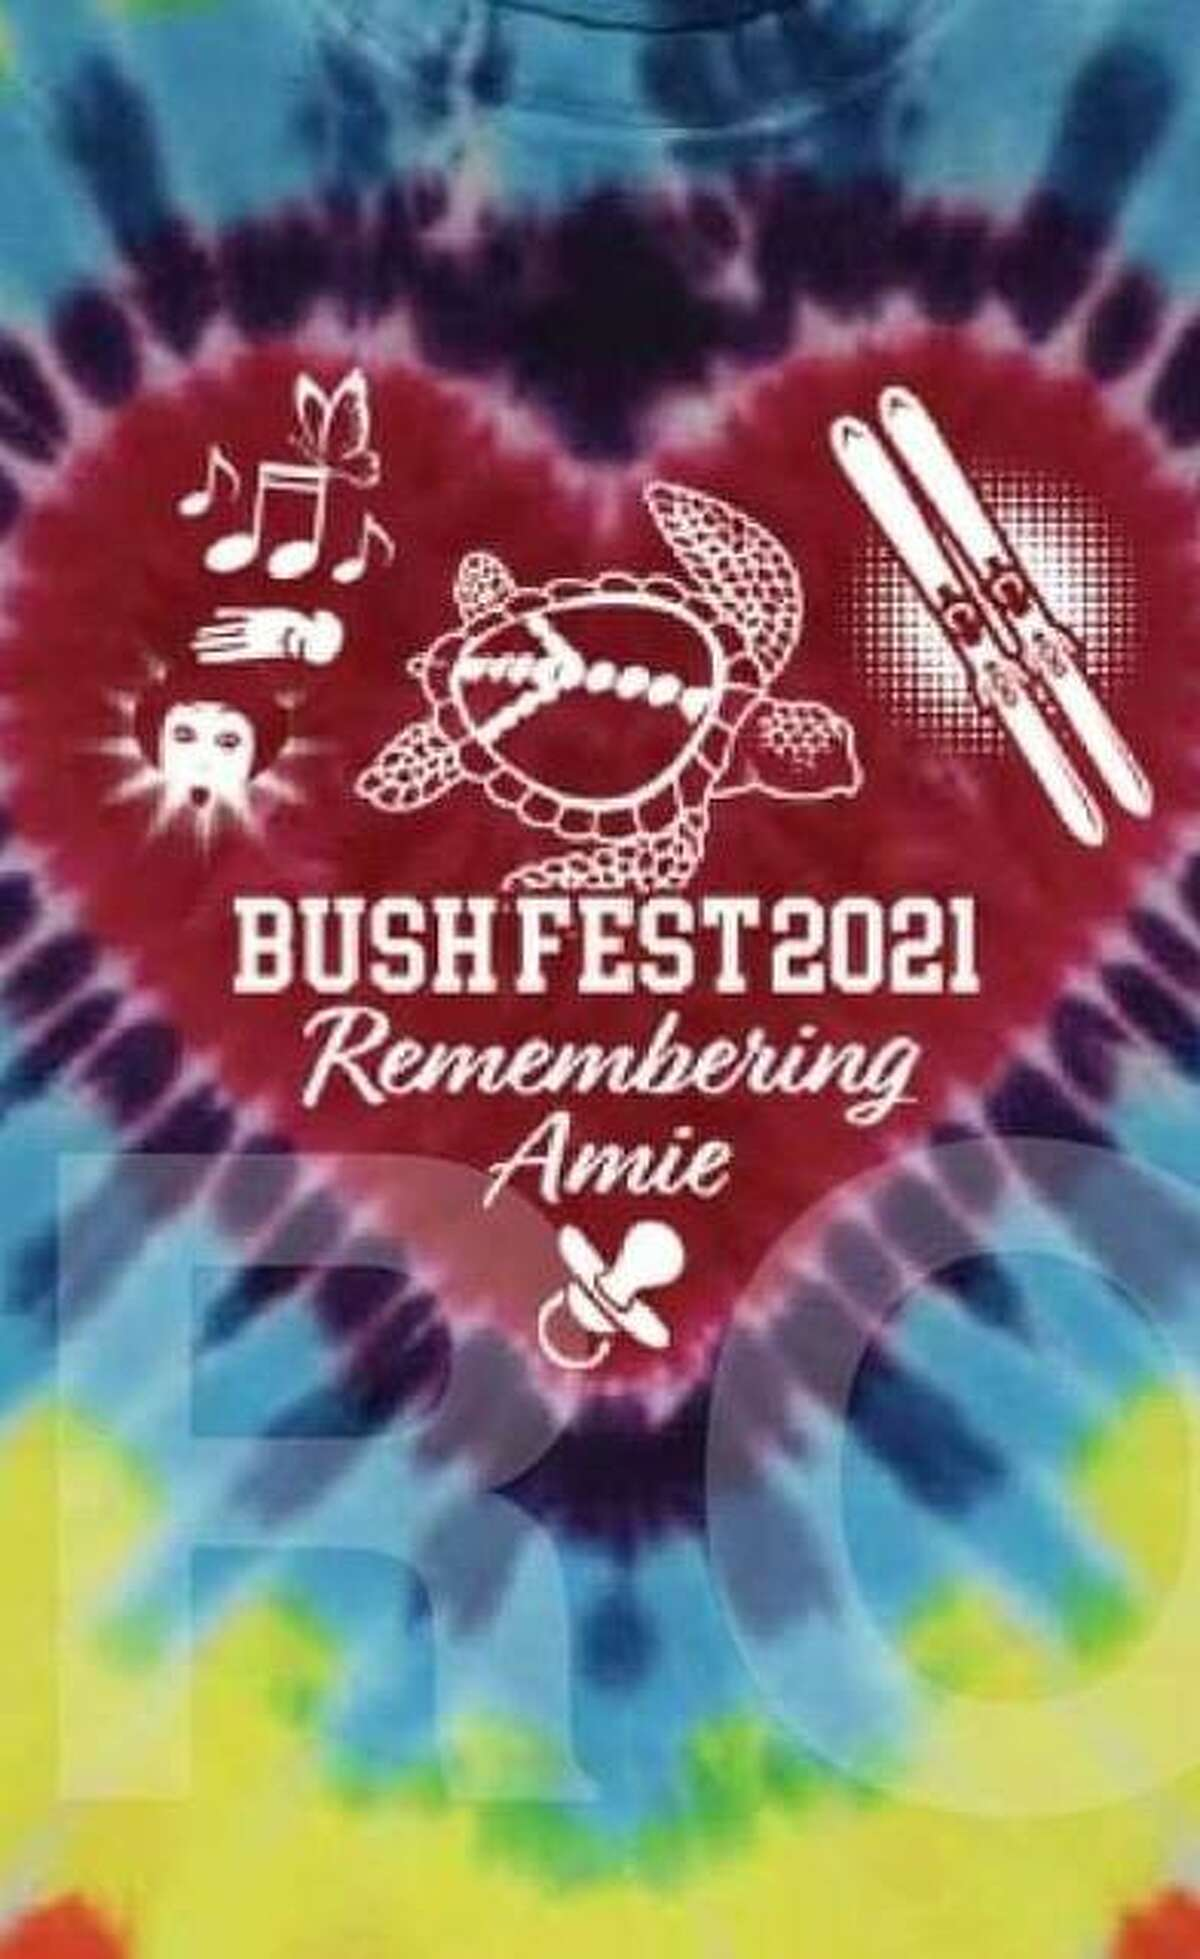 This year's BushFest is in memory of founder Doug Bush's sister Amie Bush Riffey, who died this year at age 50 of breast cancer, which ultimately metastasized to her brain. Solid color T-shirts will be sold in either pink for breast cancer awareness or gray for brain cancer awareness. There also will be a specially designed tie-dye T-shirt with a logo celebrating Amie's spirit. There will be a silent auction raising money for park benches and picnic tables and their placement in parks and outdoor settings. Contact Bush or his wife, Kristy Bush, via Facebook messenger to make a donation.